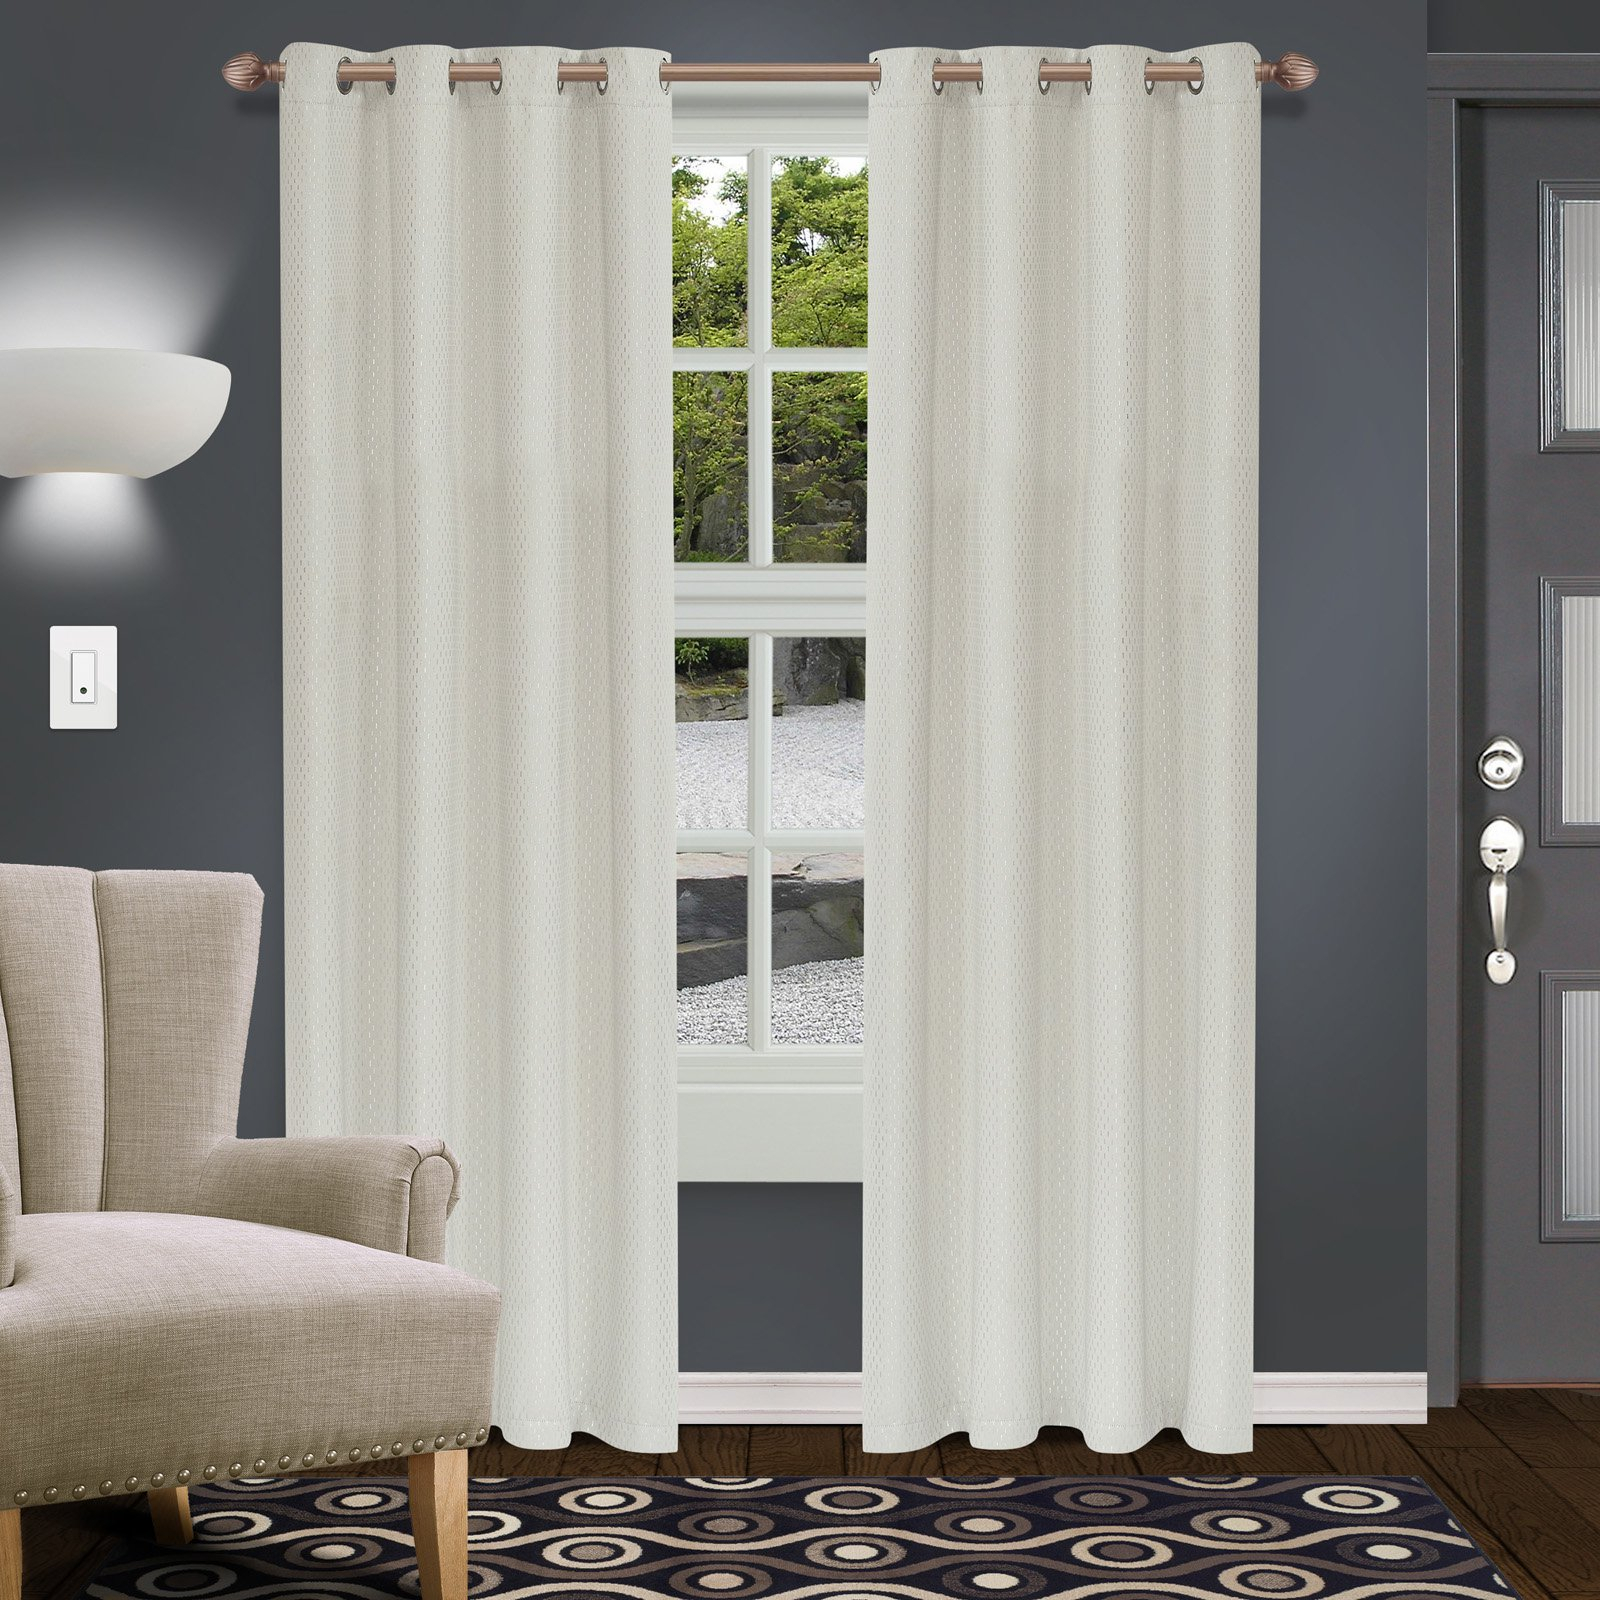 Superior Shimmer Blackout 2 Panel Curtains Ivory | Products Pertaining To Superior Leaves Insulated Thermal Blackout Grommet Curtain Panel Pairs (View 19 of 30)